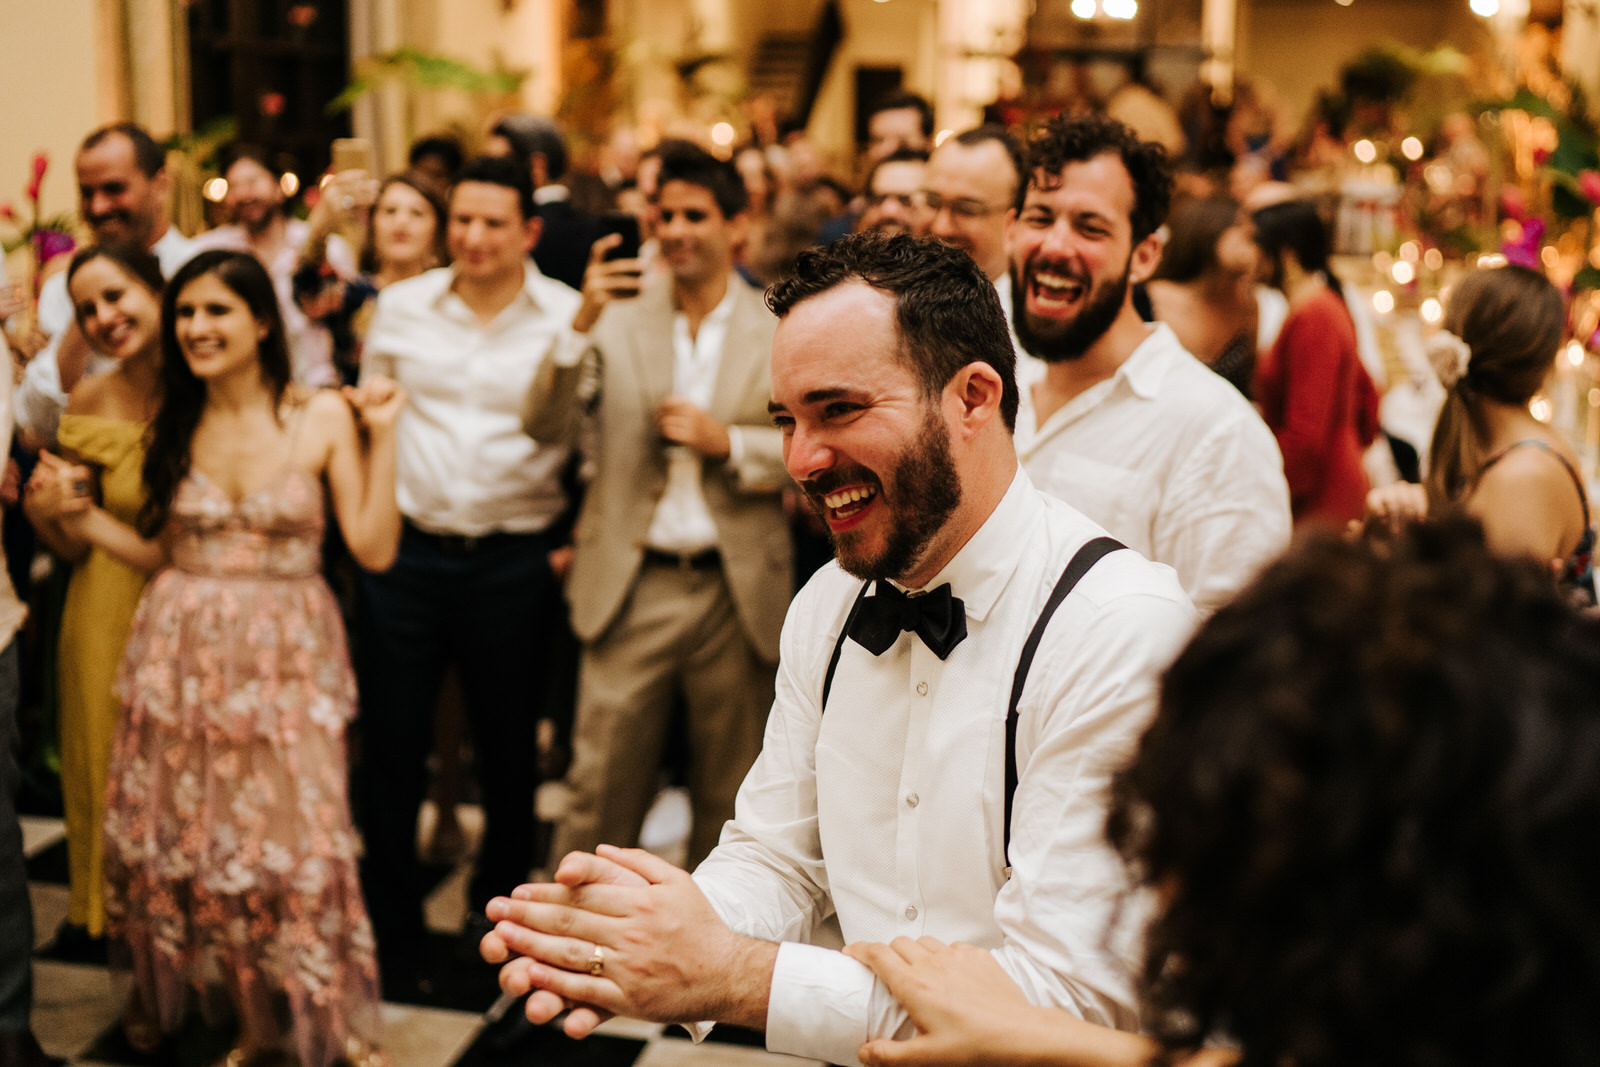 Groom laughs and claps his hands as he reacts to the friend who took the microphone